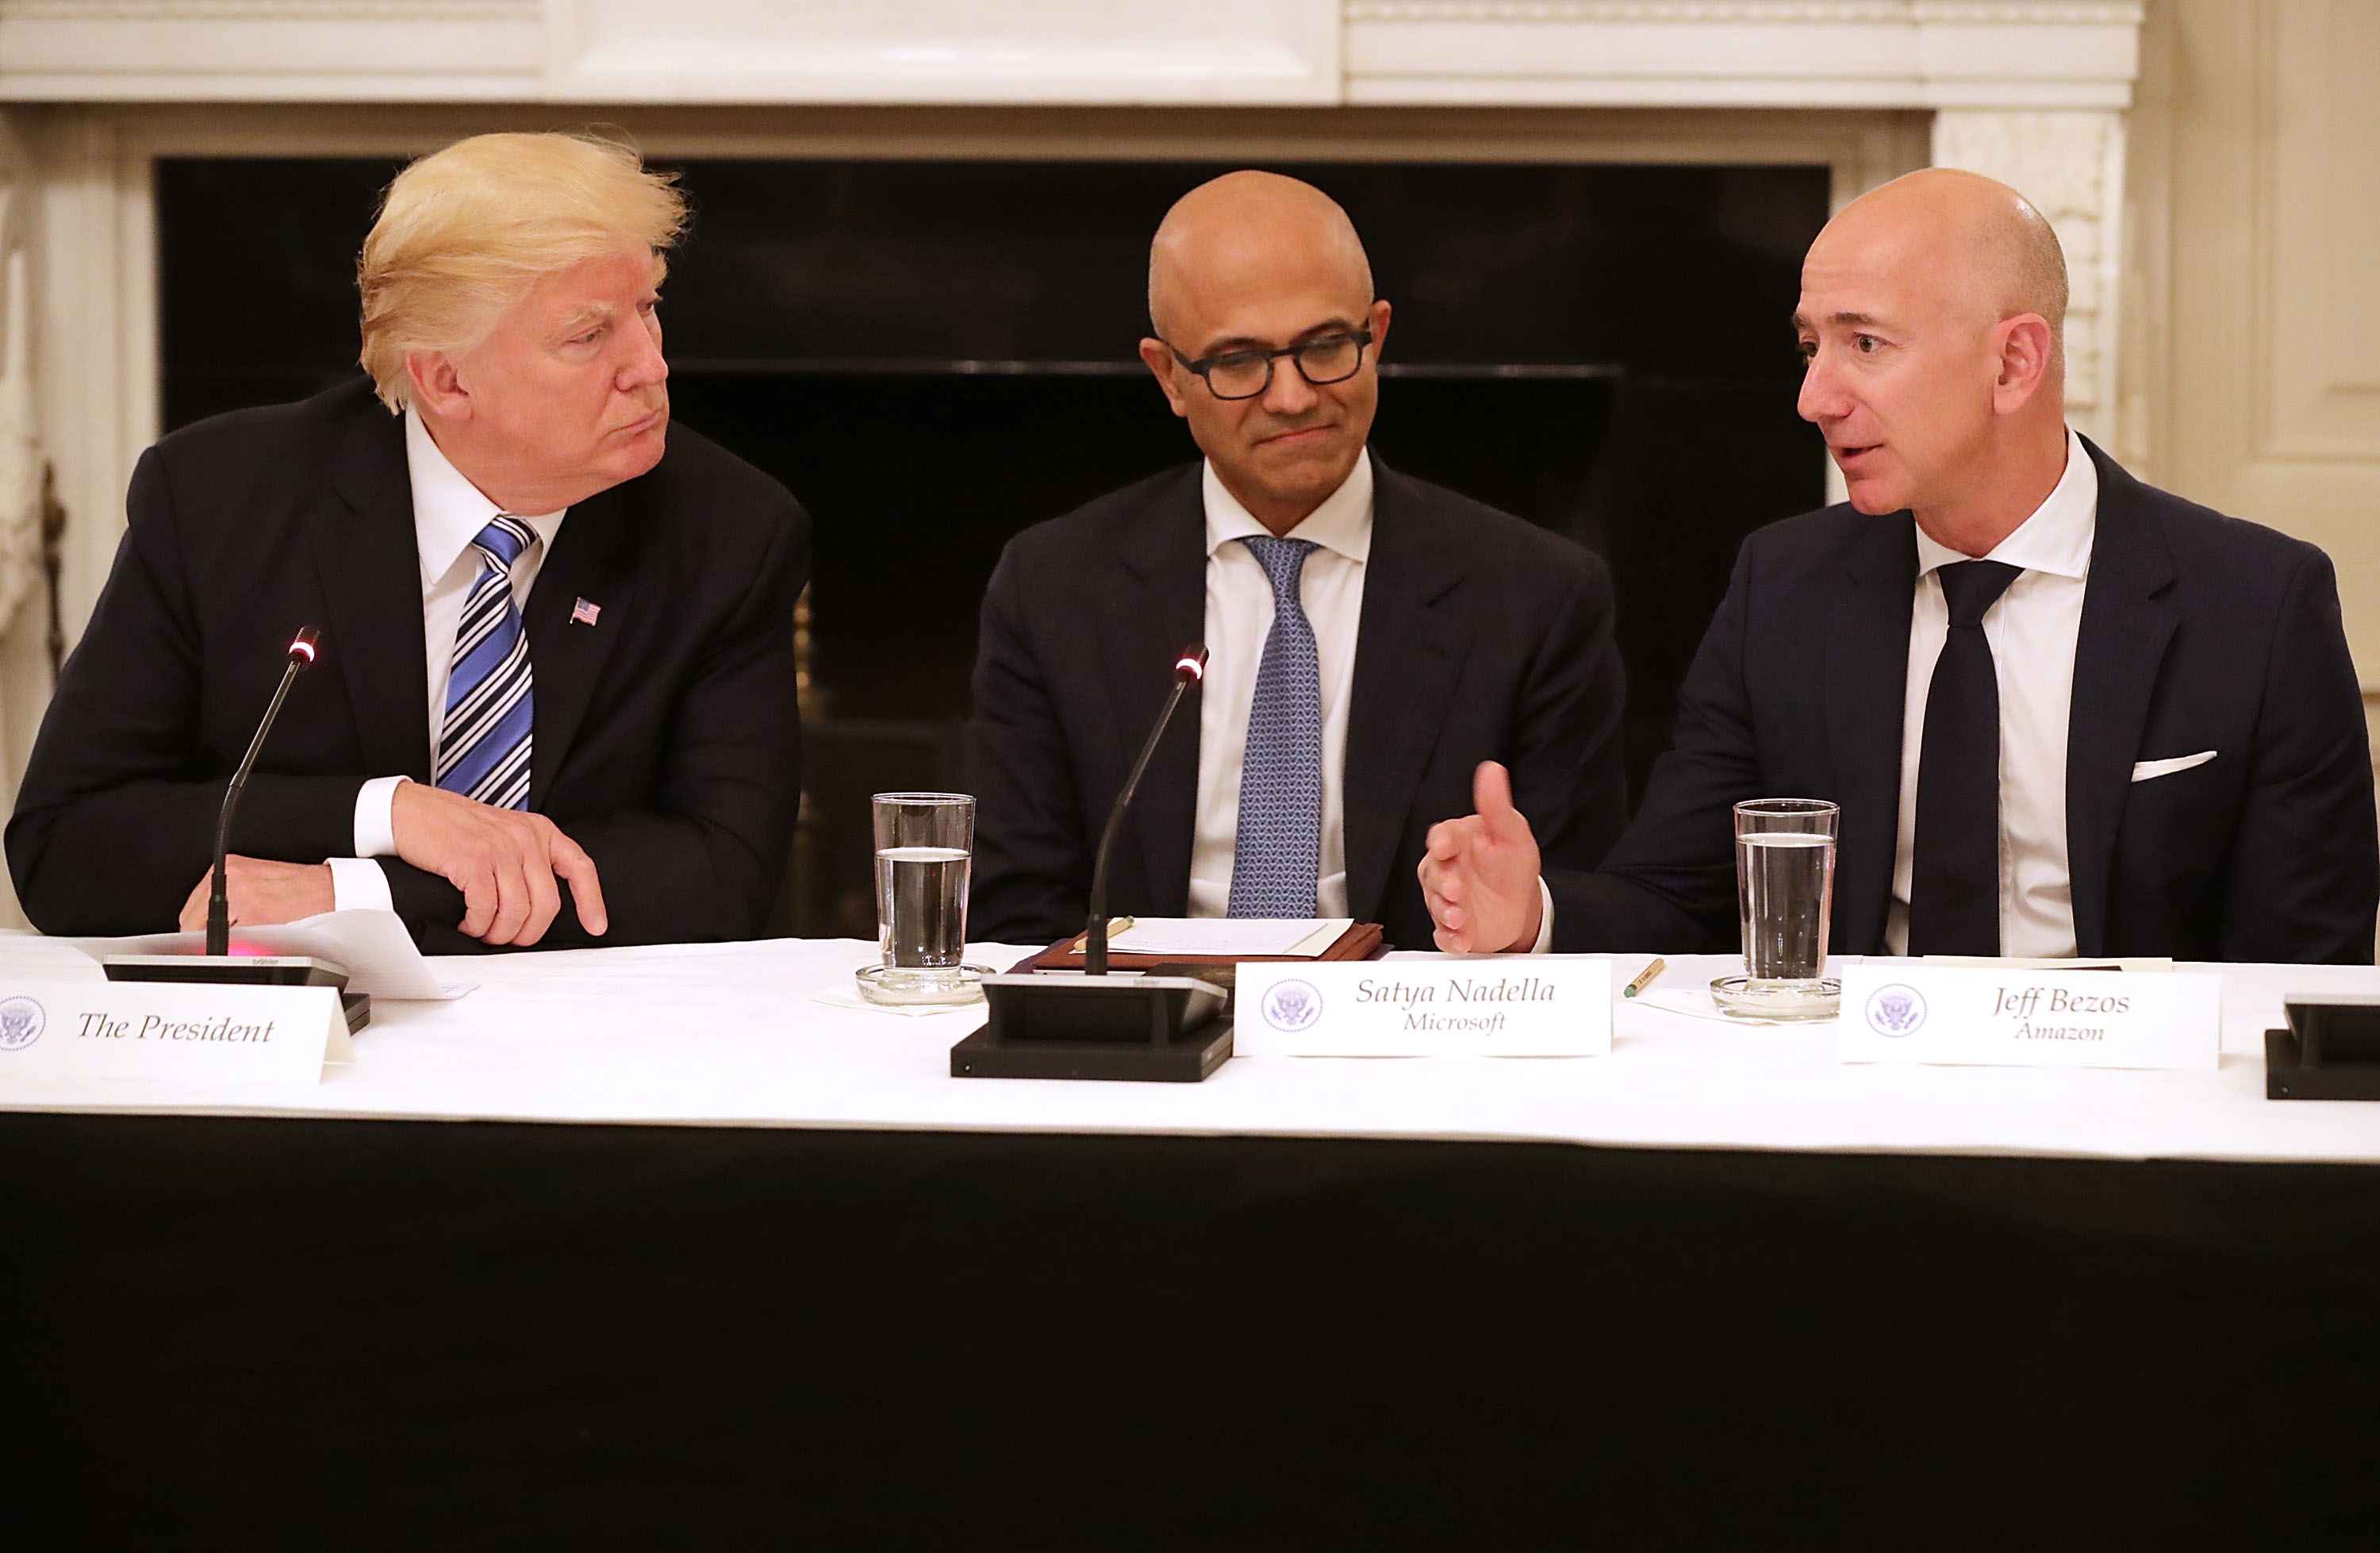 U.S. President Donald Trump, Microsoft CEO Satya Nadella and Amazon CEO Jeff Bezos attend a meeting of the American Technology Council in the State Dining Room of the White House June 19, 2017 in Washington, DC.